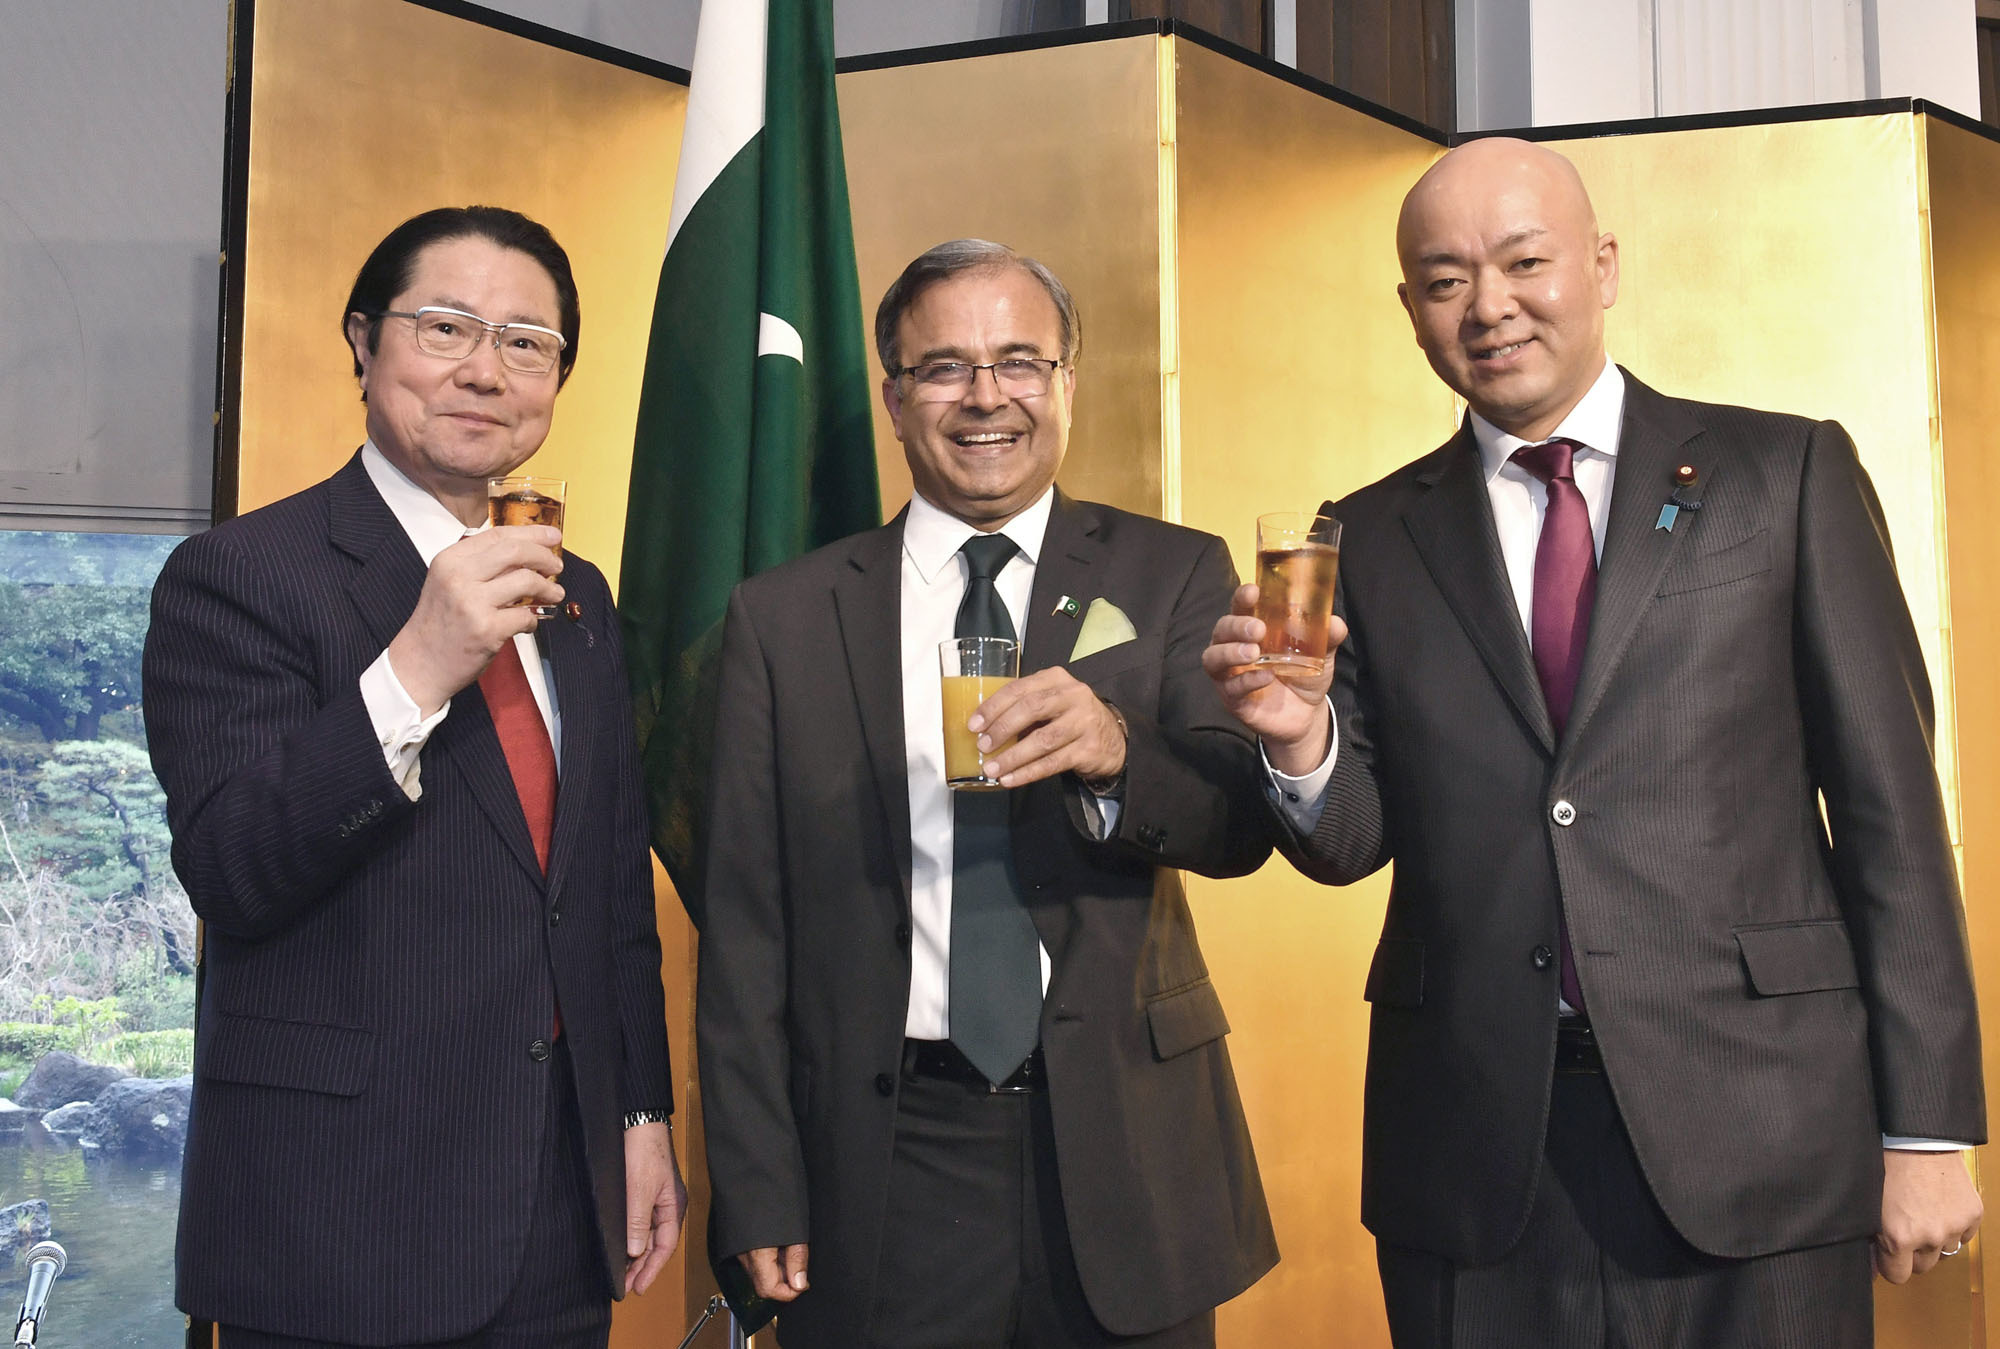 Pakistan Ambassador Asad Majeed Khan (center) joins President of Japan-Pakistan Parliamentarians Friendship League, Seishiro Eto (left), and Parliamentary Vice-Minister for Foreign Affairs Manabu Horii during a reception to celebrate the National Day of the Islamic Republic of Pakistan at Hotel New Otani Tokyo on March 22. |   YOSHIAKI MIURA